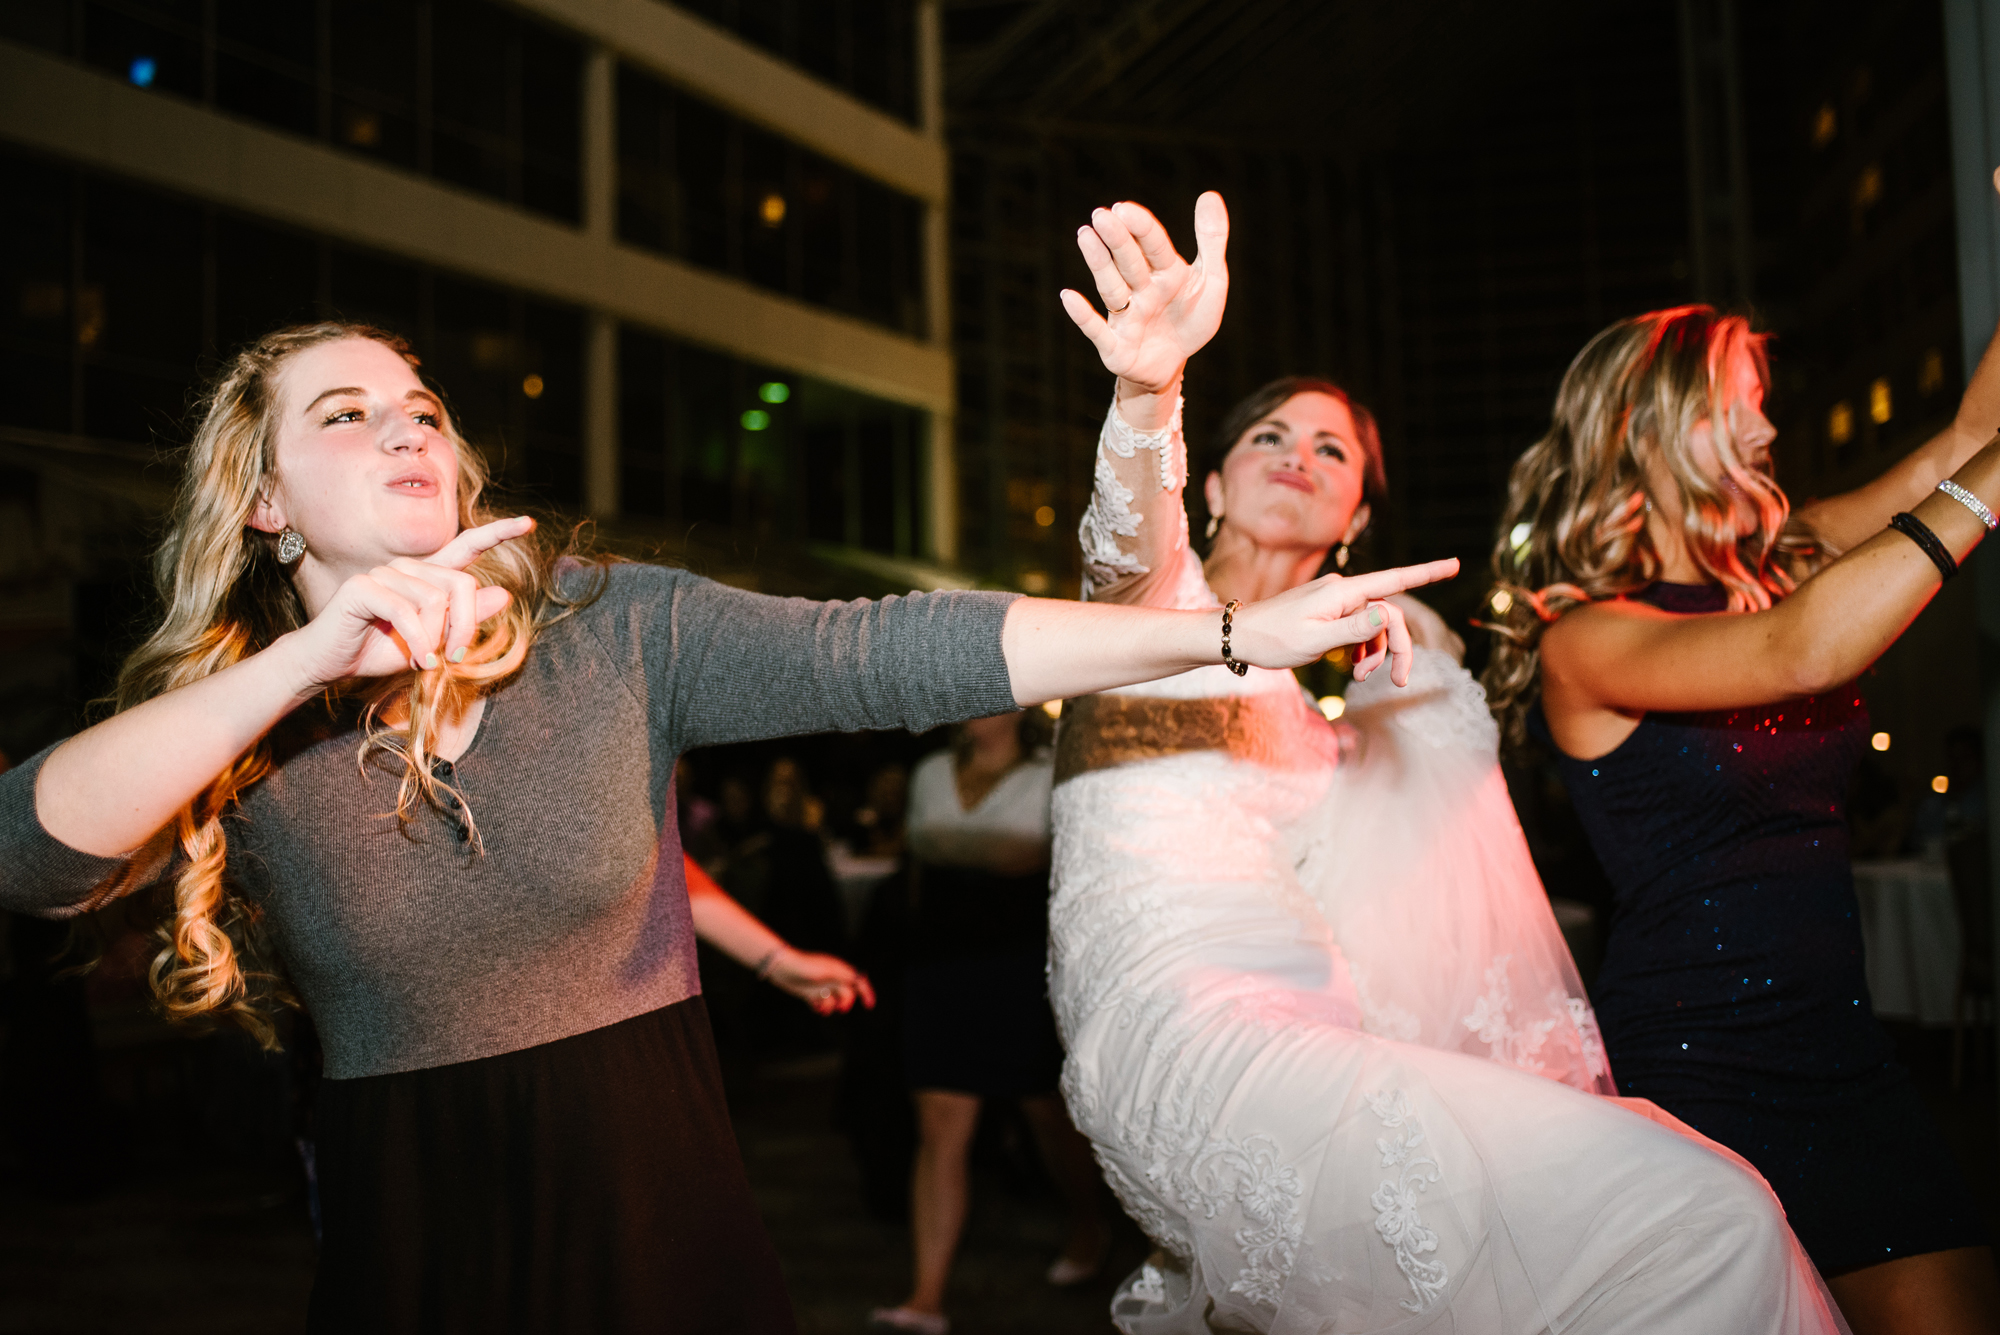 south-bend-indiana-double-tree-wedding-dancing-photos-sydney-marie (10).jpg